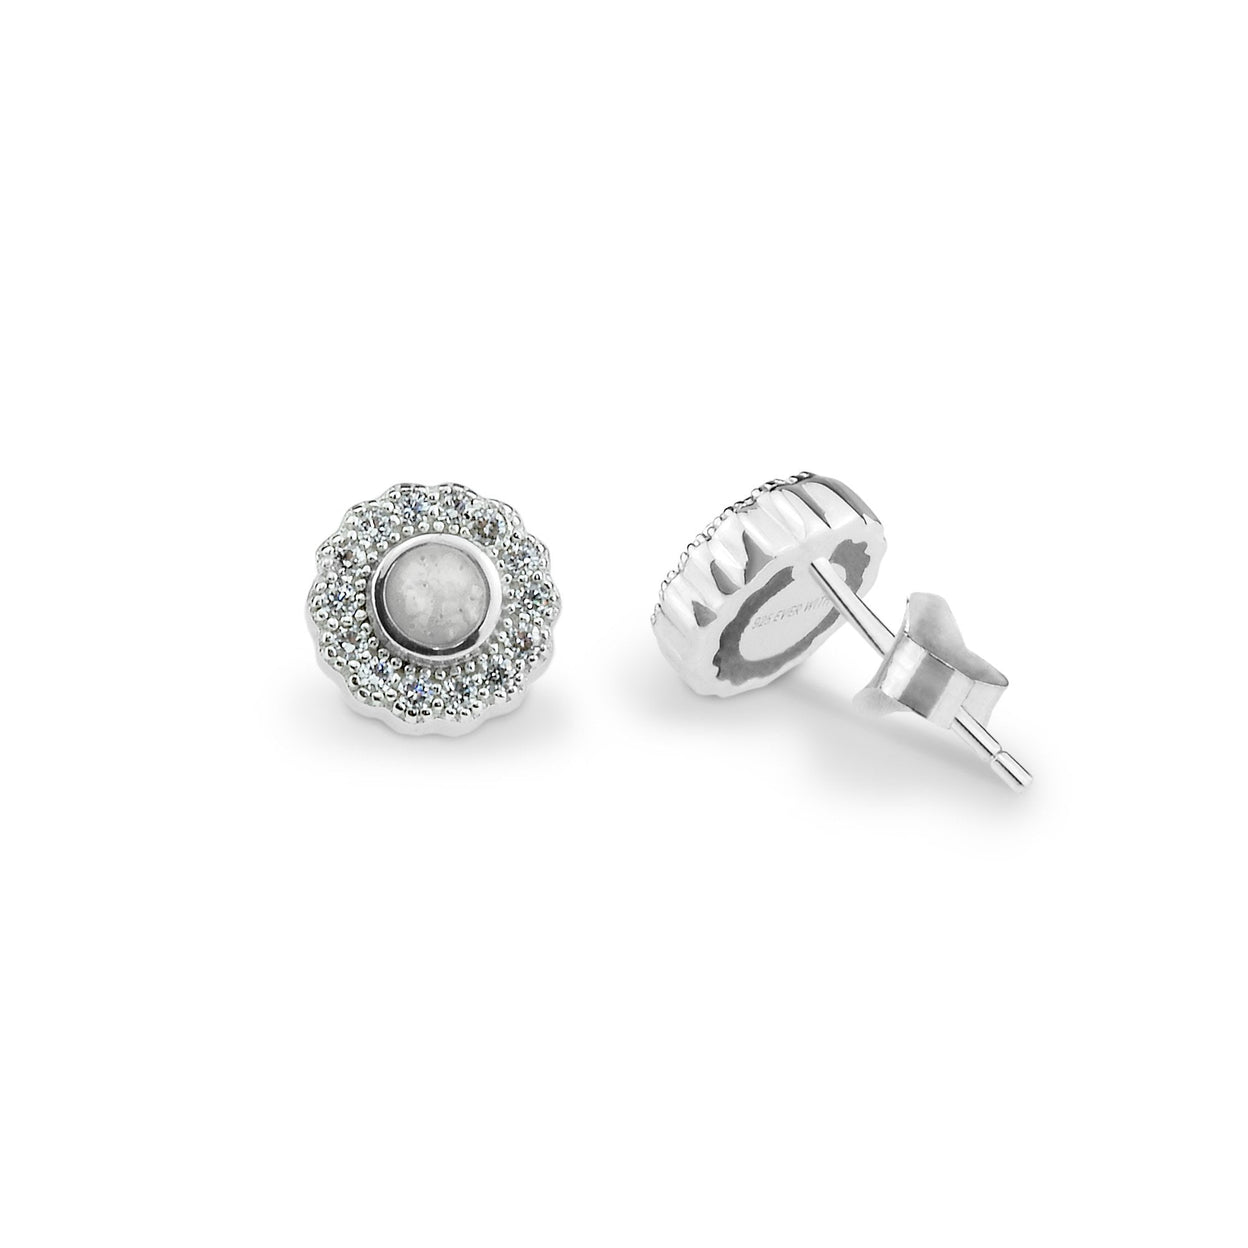 Load image into Gallery viewer, EverWith™ Ladies Petals Memorial Ashes Earrings with Swarovski Crystals